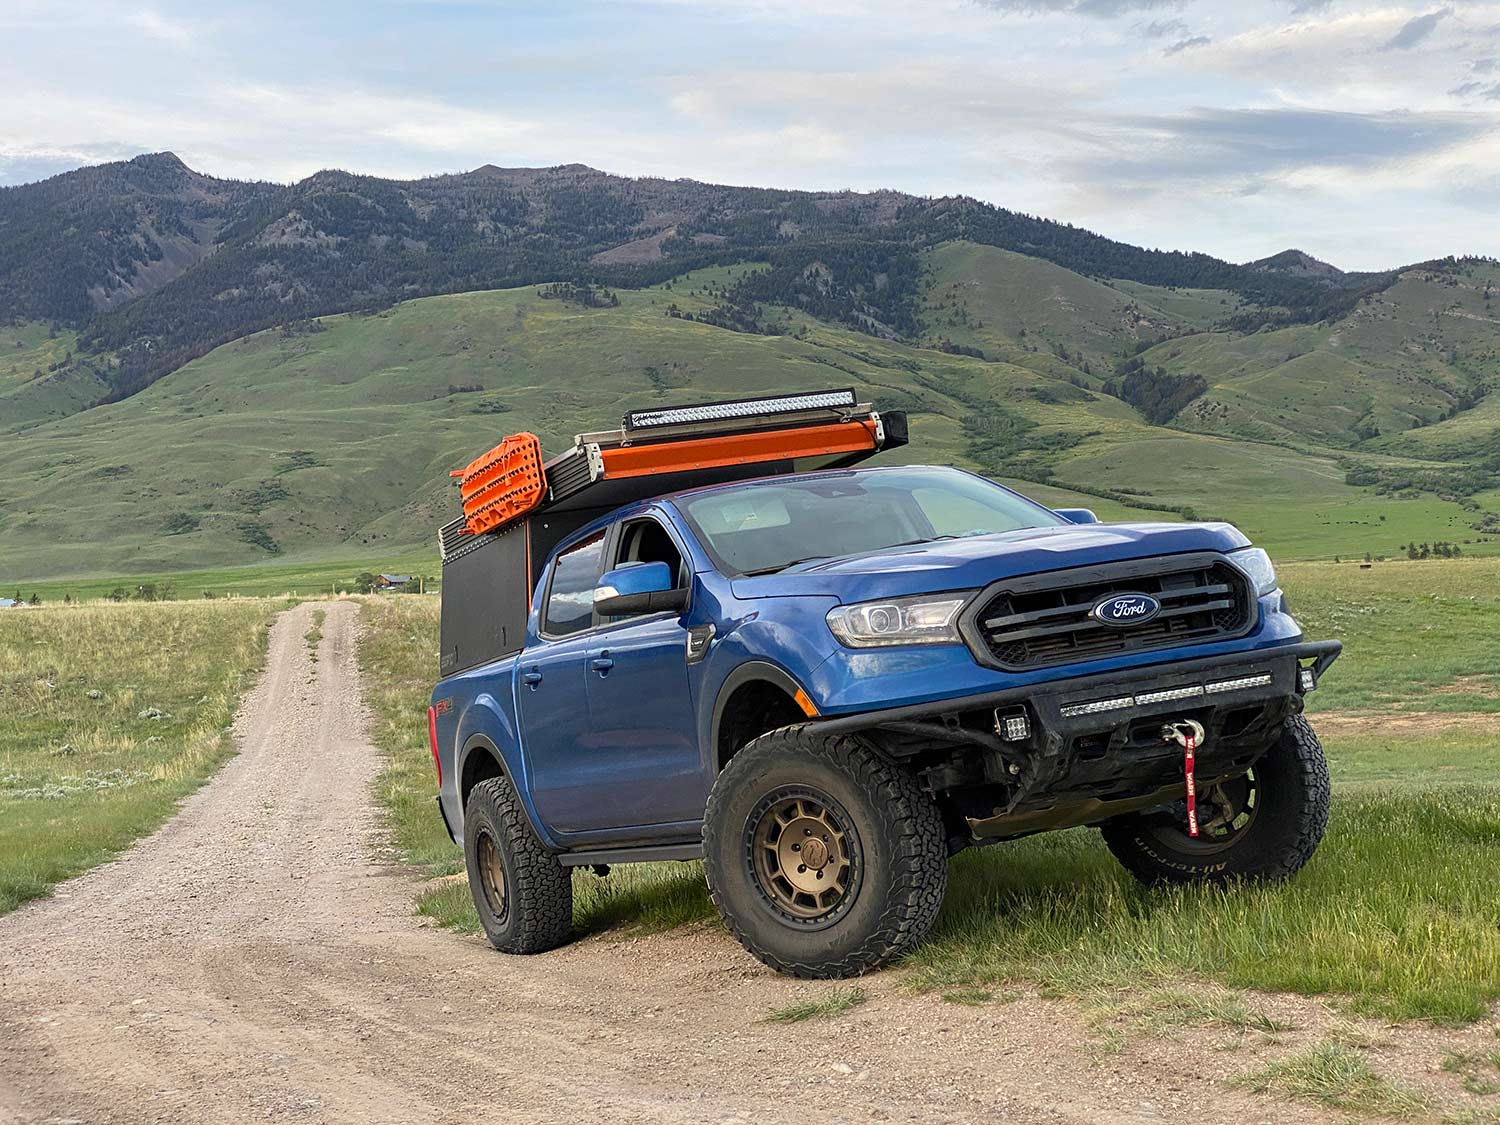 A blue ford pickup truck outfitted with custom attachments and gear.